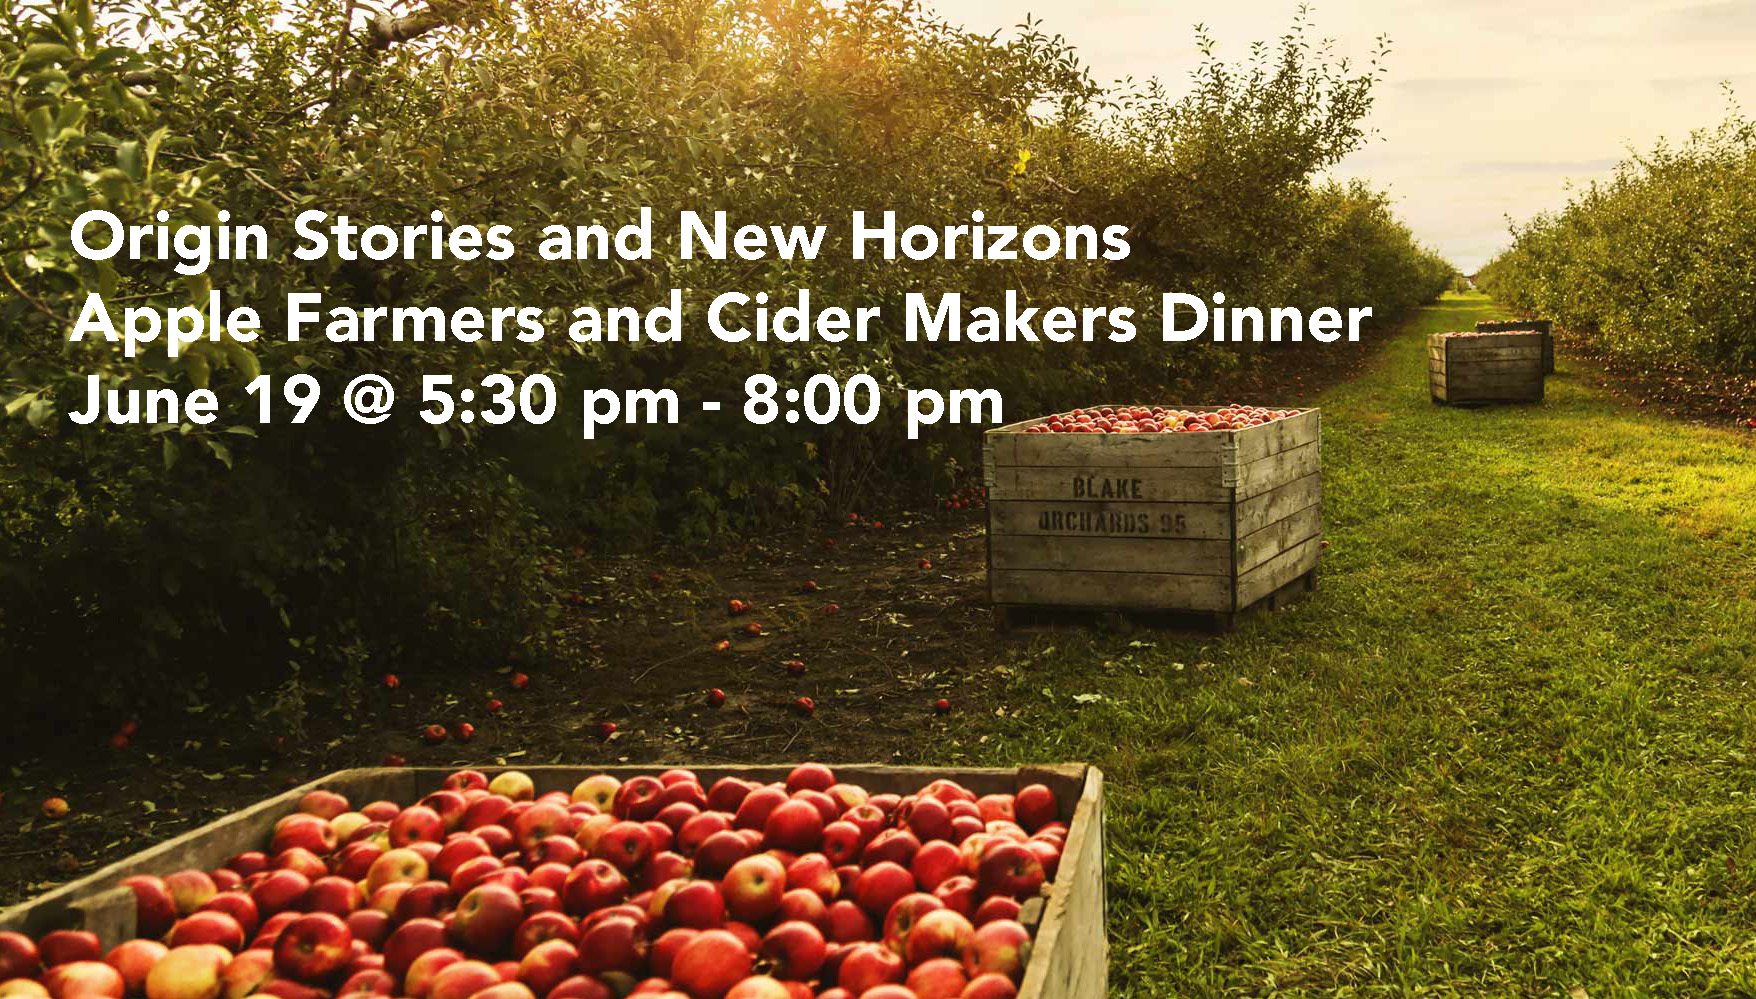 Origin Stories and New Horizons: Apple Farmers and Cider Makers Dinner